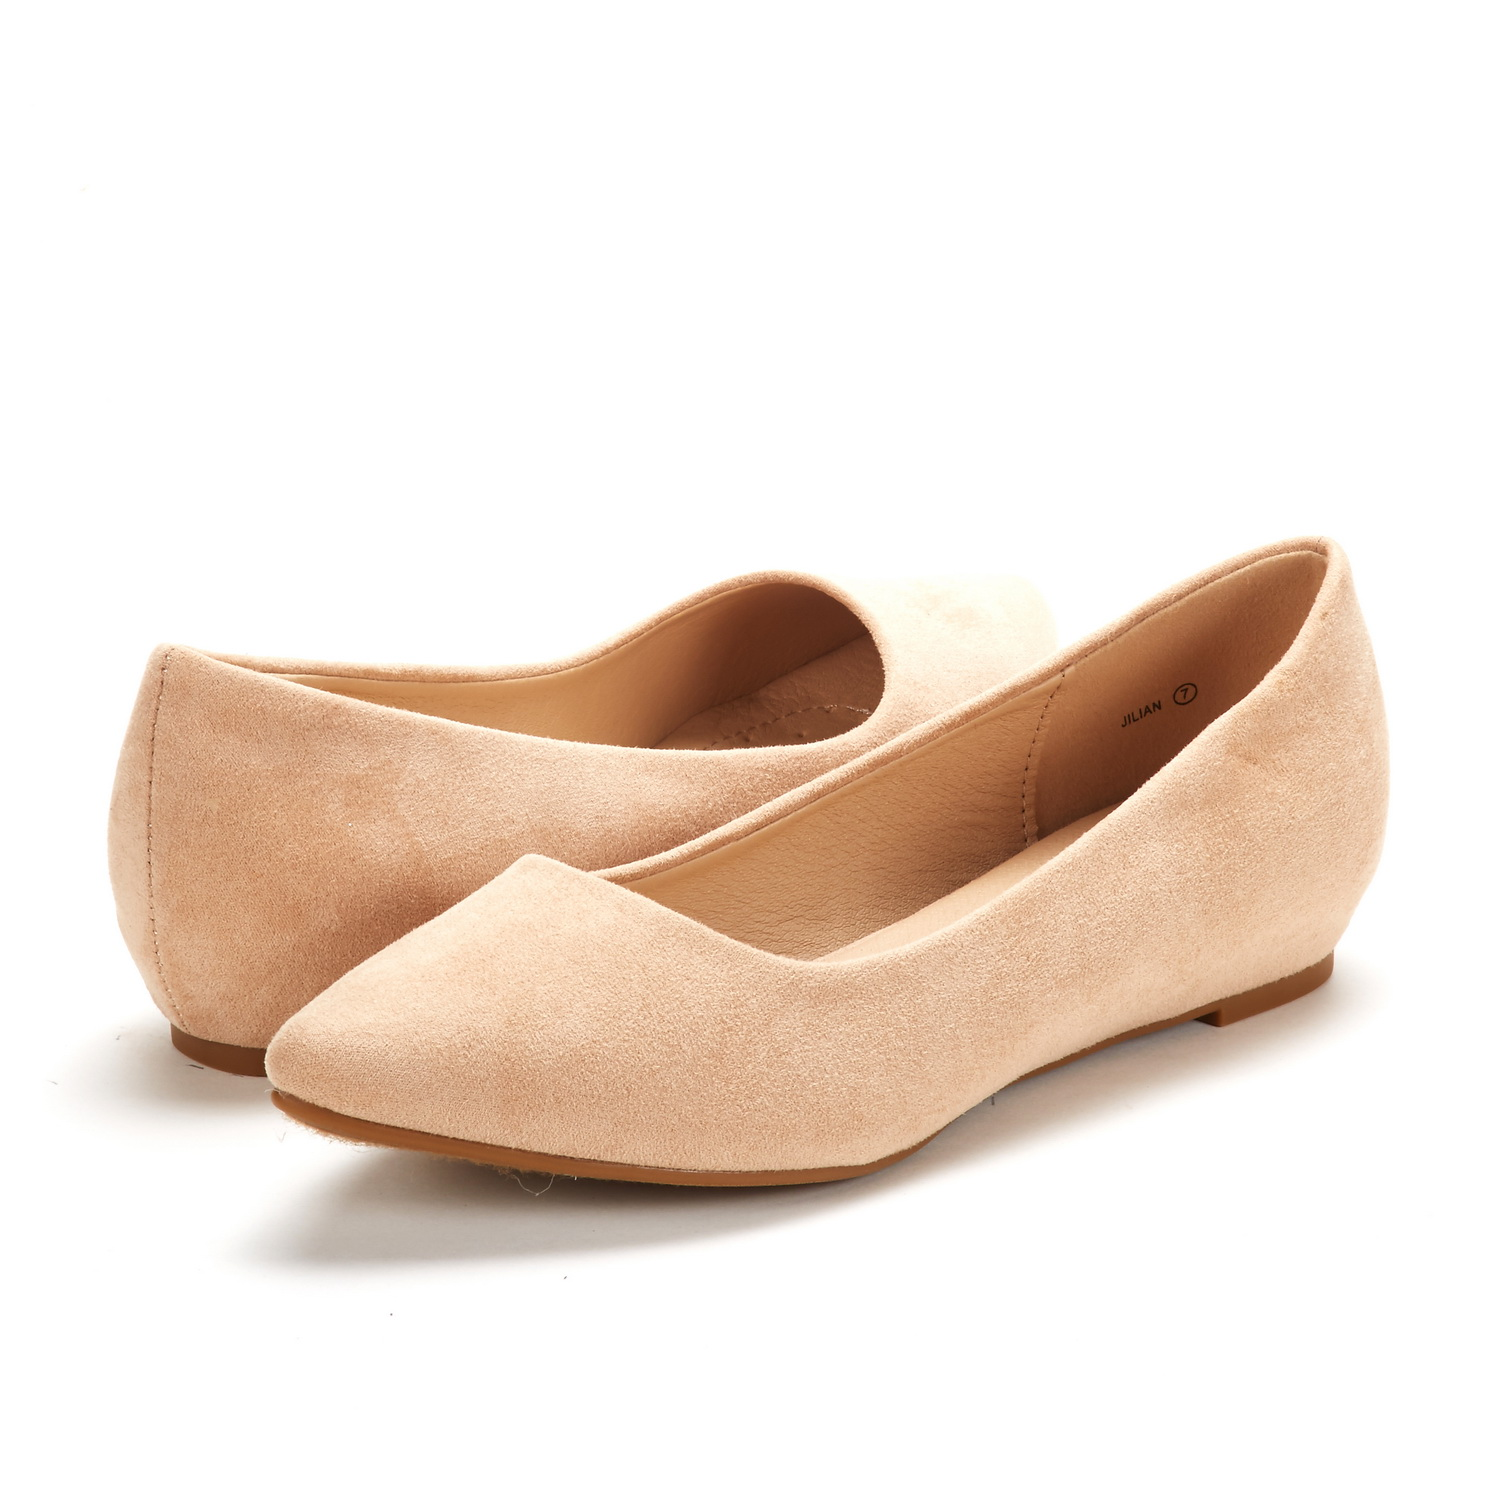 DREAM-PAIRS-Women-Low-Wedge-Flats-Ladies-Pointed-Toe-Slip-On-Comfort-Flat-Shoes thumbnail 55